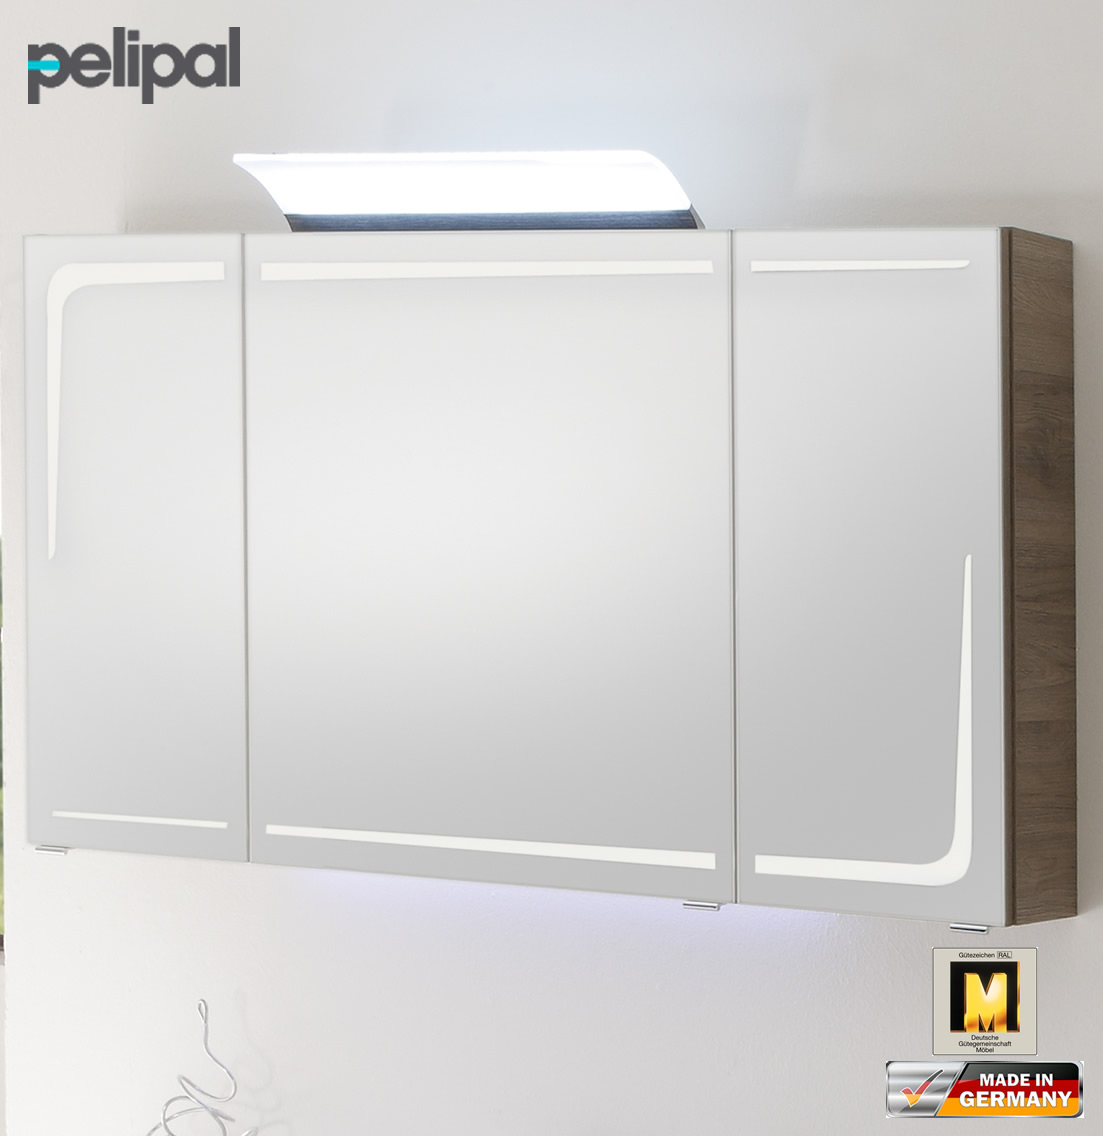 pelipal solitaire 7005 spiegelschrank 120 cm rd sps 05 impuls home. Black Bedroom Furniture Sets. Home Design Ideas